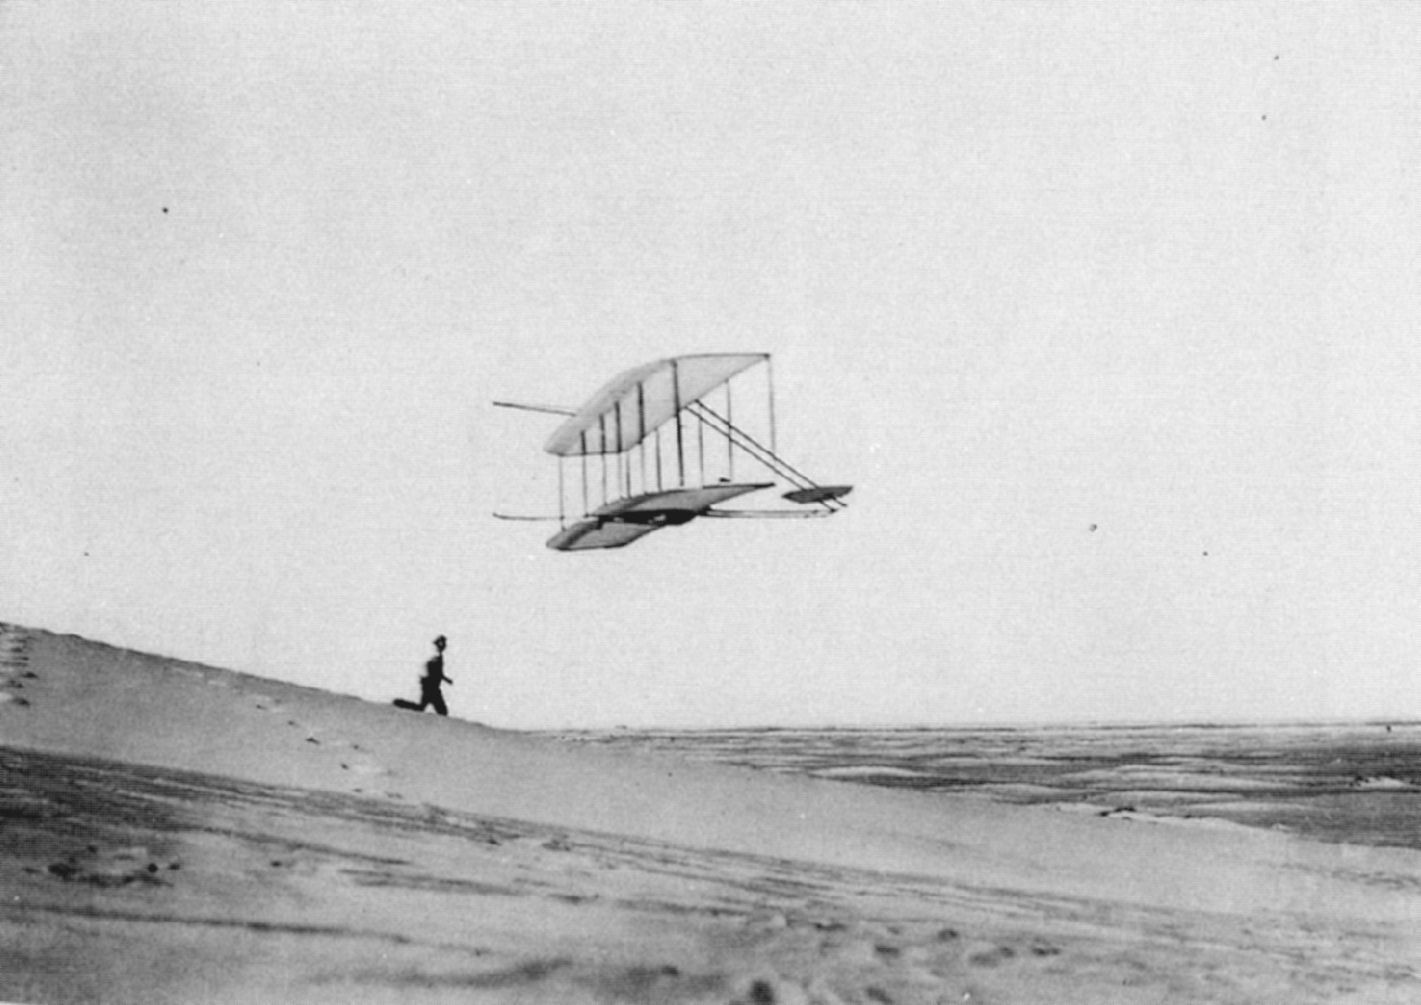 Wright Brothers First Flight 1901 The Wrights fly